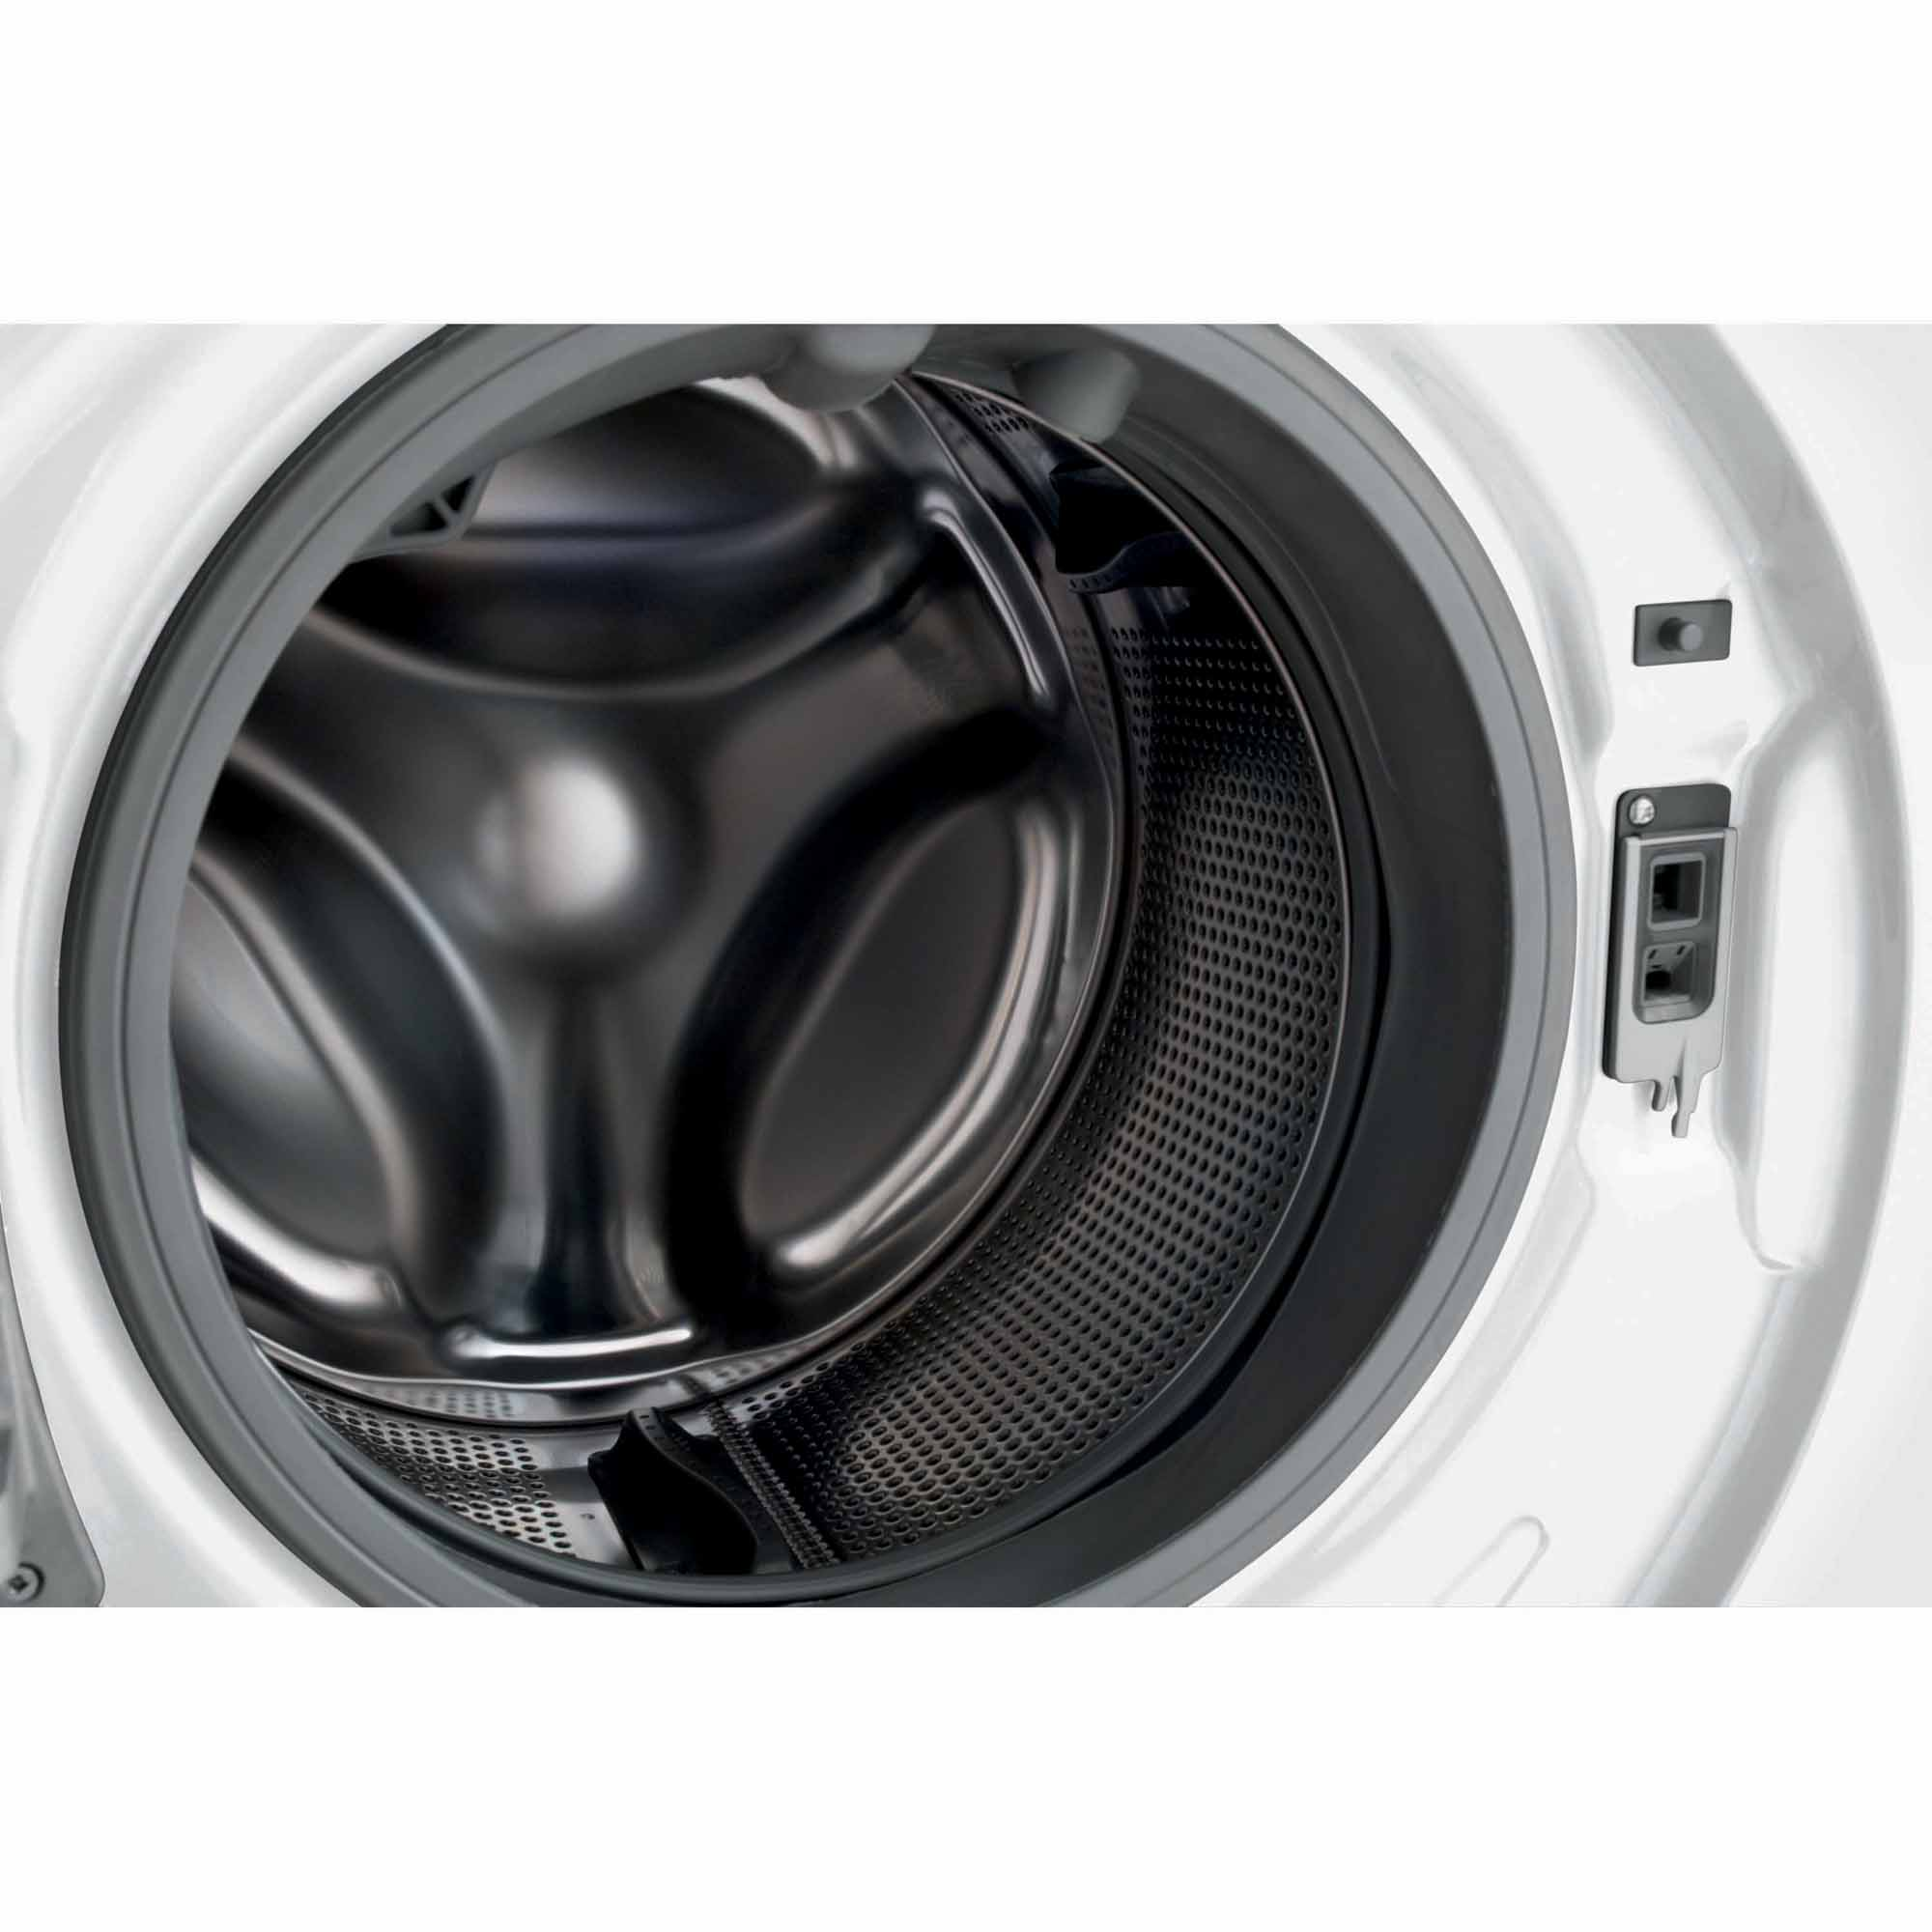 Frigidaire FFFW5000QW 3.9 cu. ft. Front-Load Washer - White